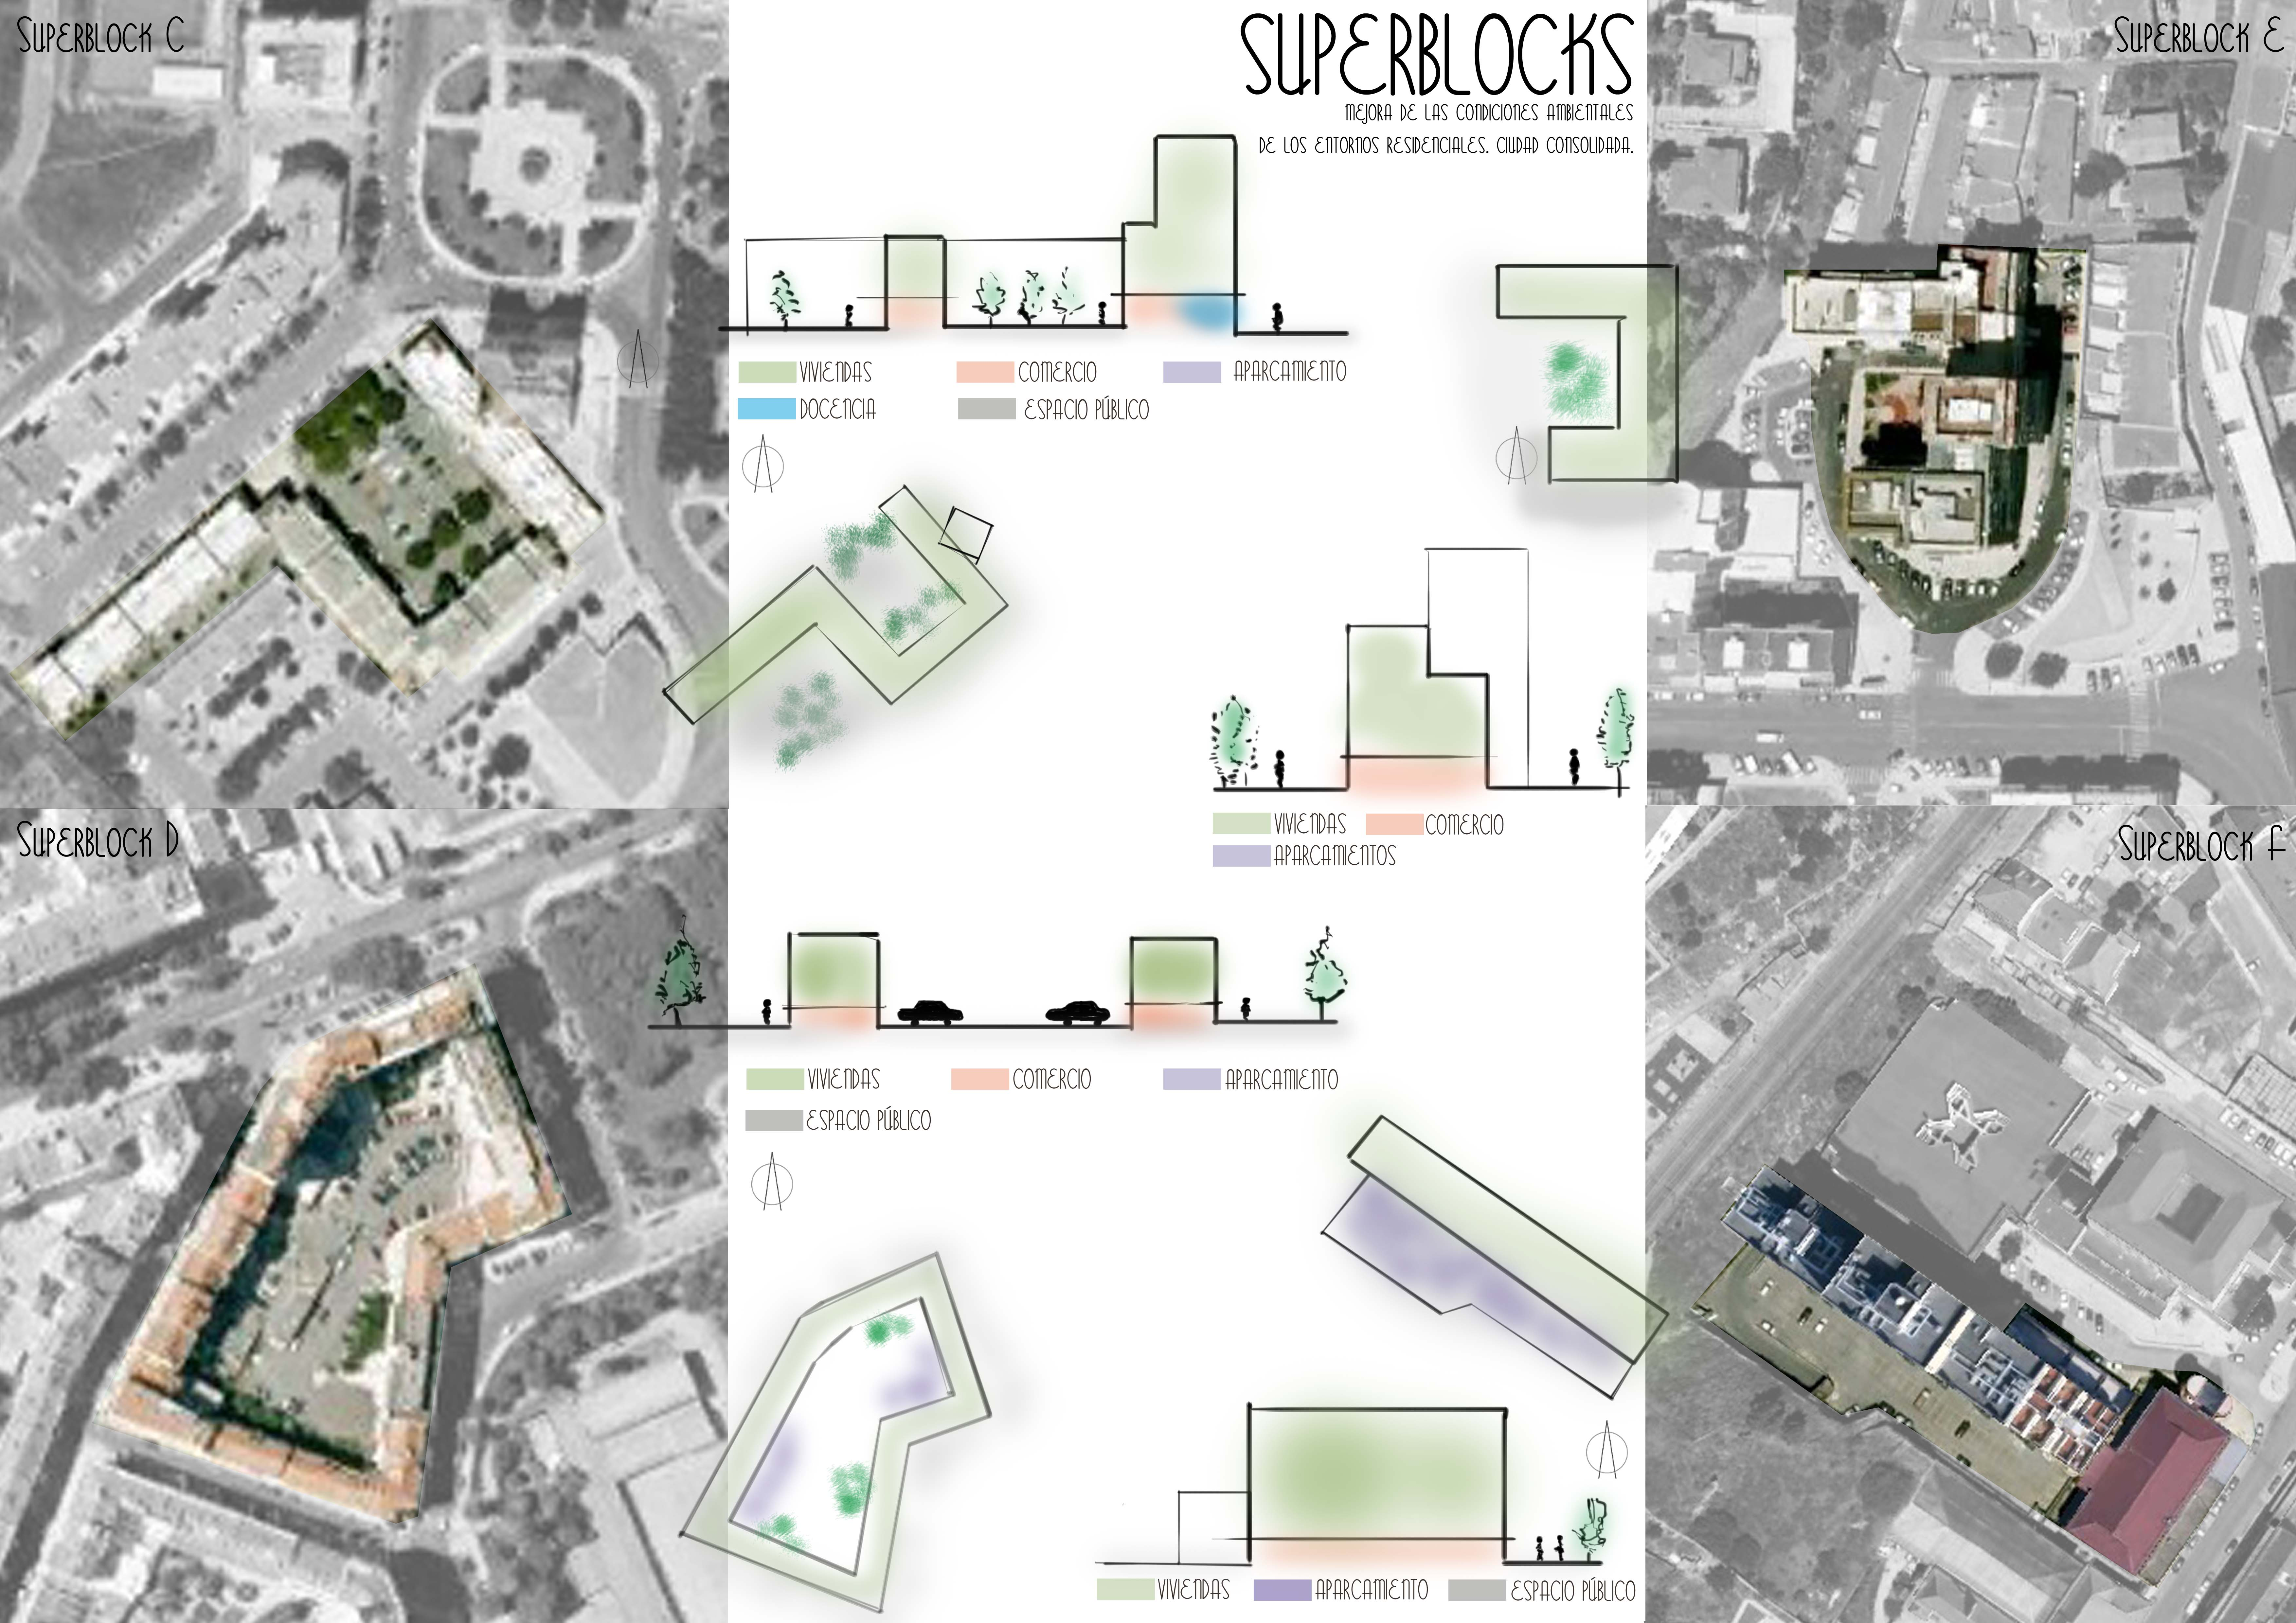 Superblock en Lisboa 2